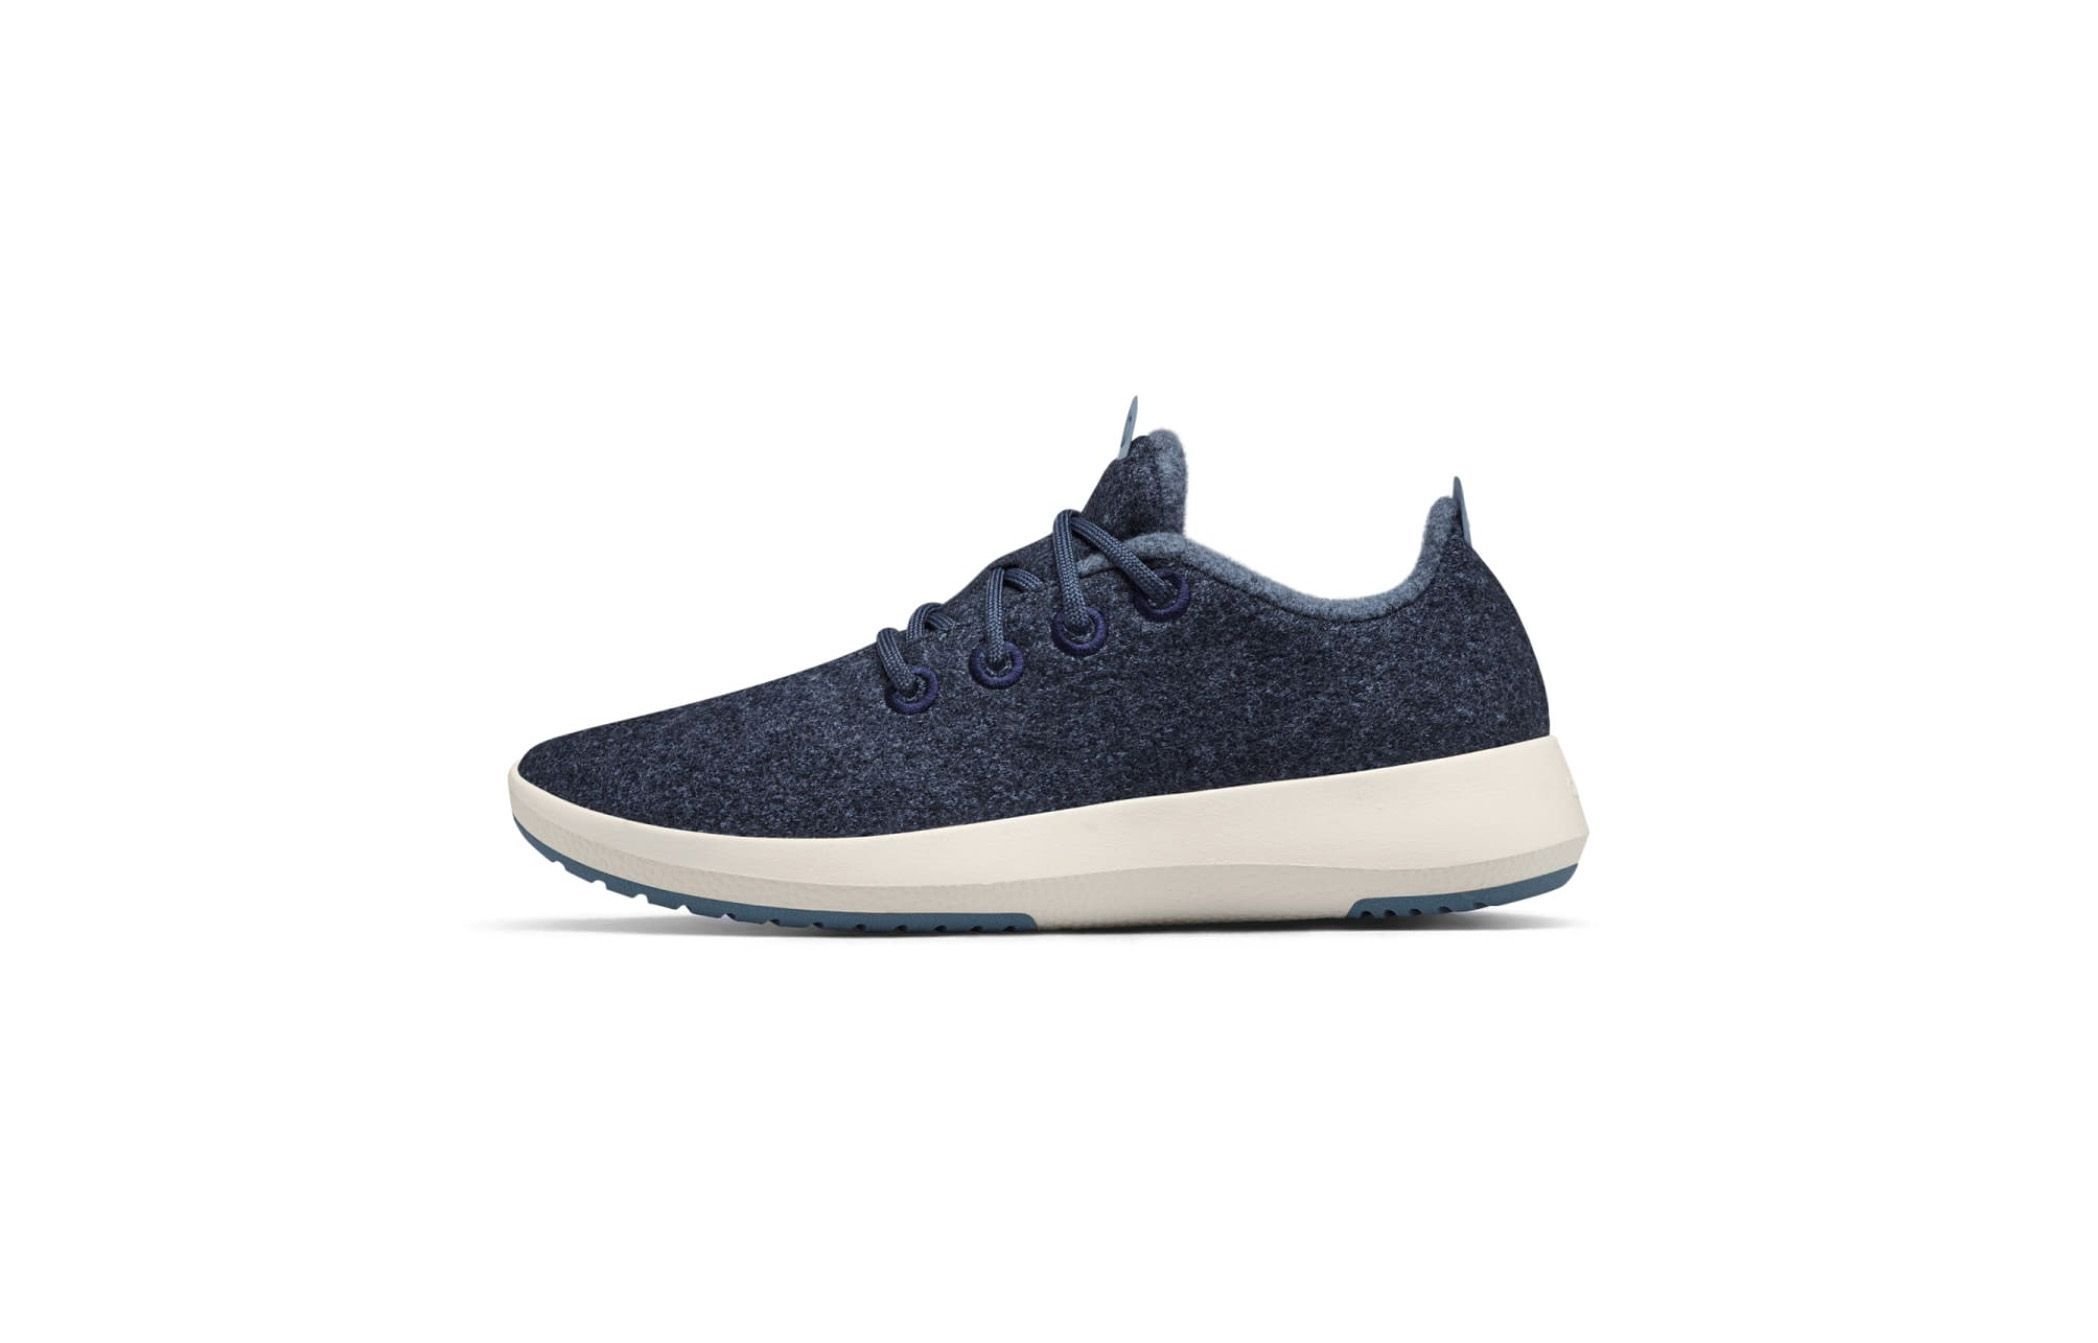 most comfortable sneakers of all time